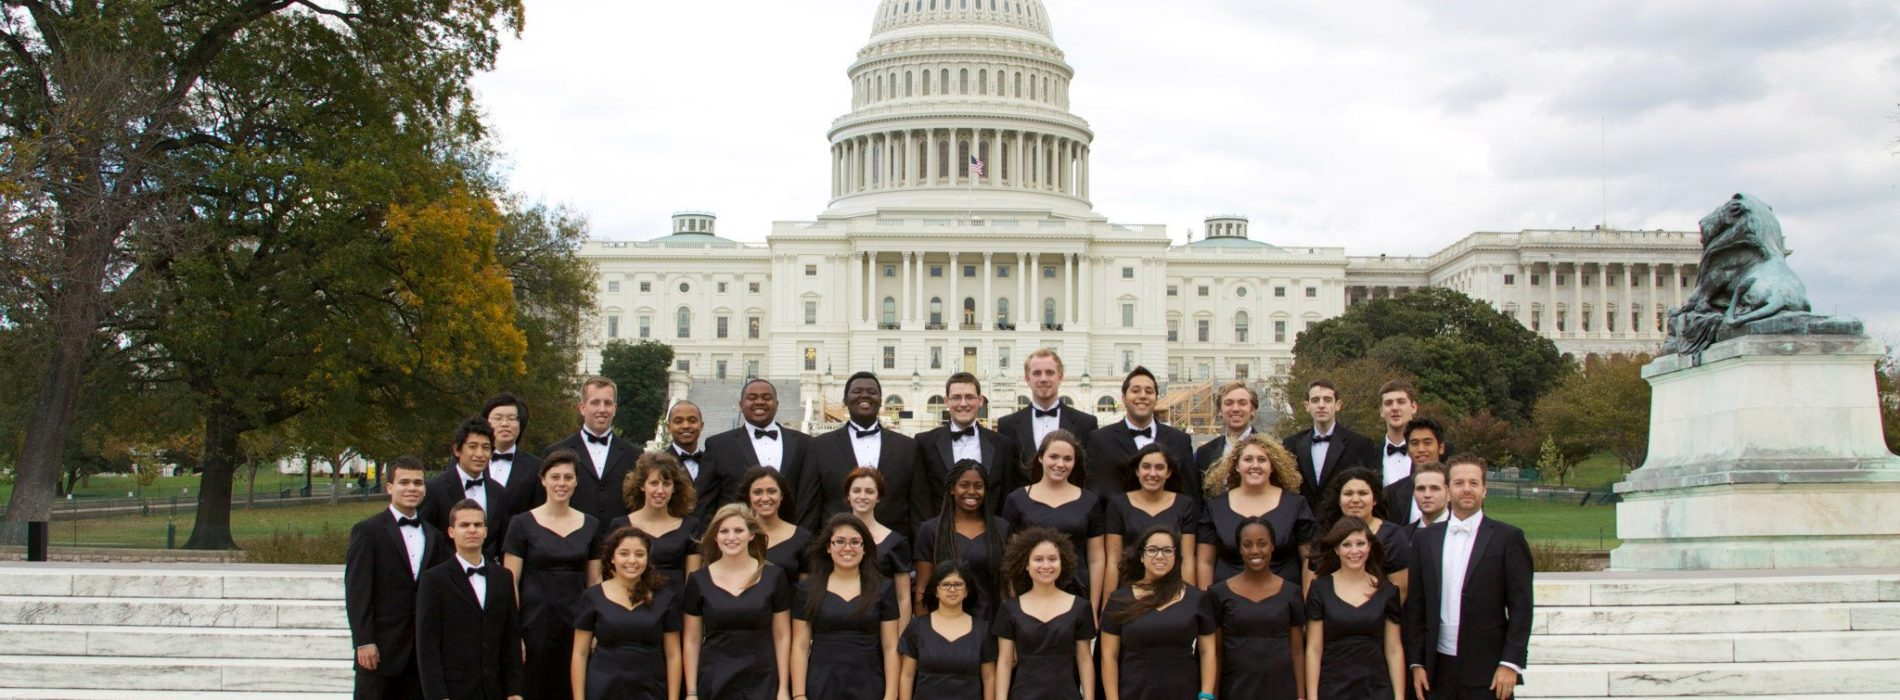 University Singers Perform for Senate, General Conference